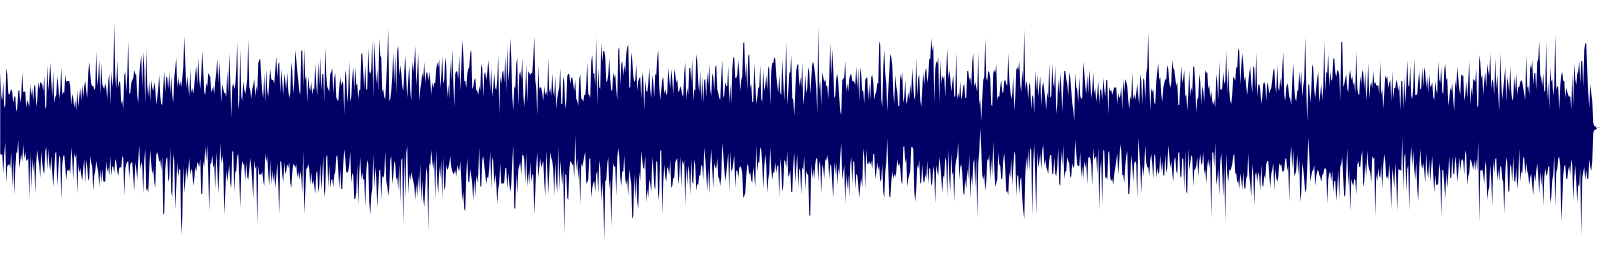 waveform of track #159337